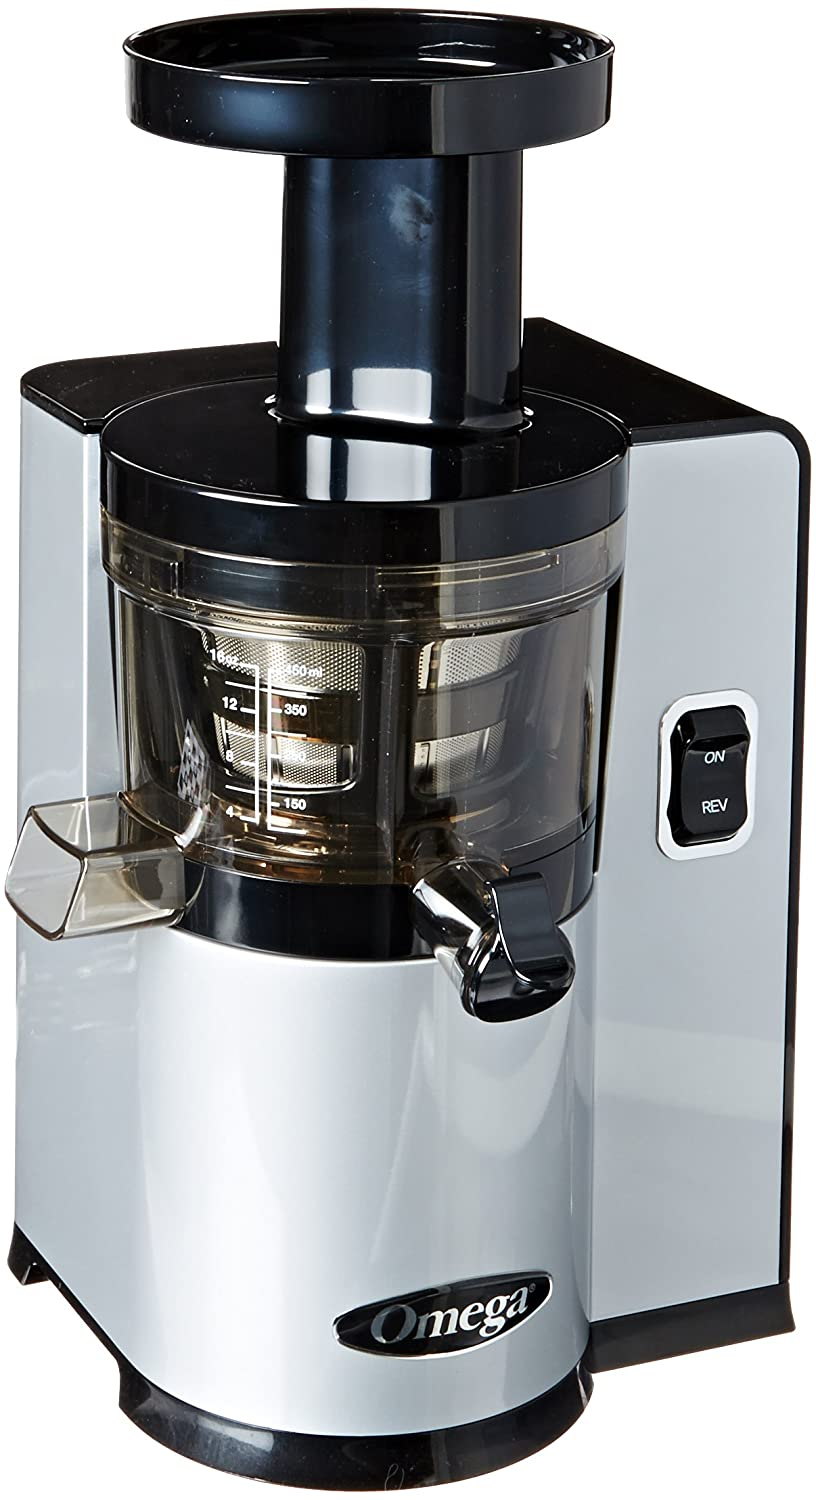 Omega VERT Slow Juicer VSJ843QS, Square Version, Silver